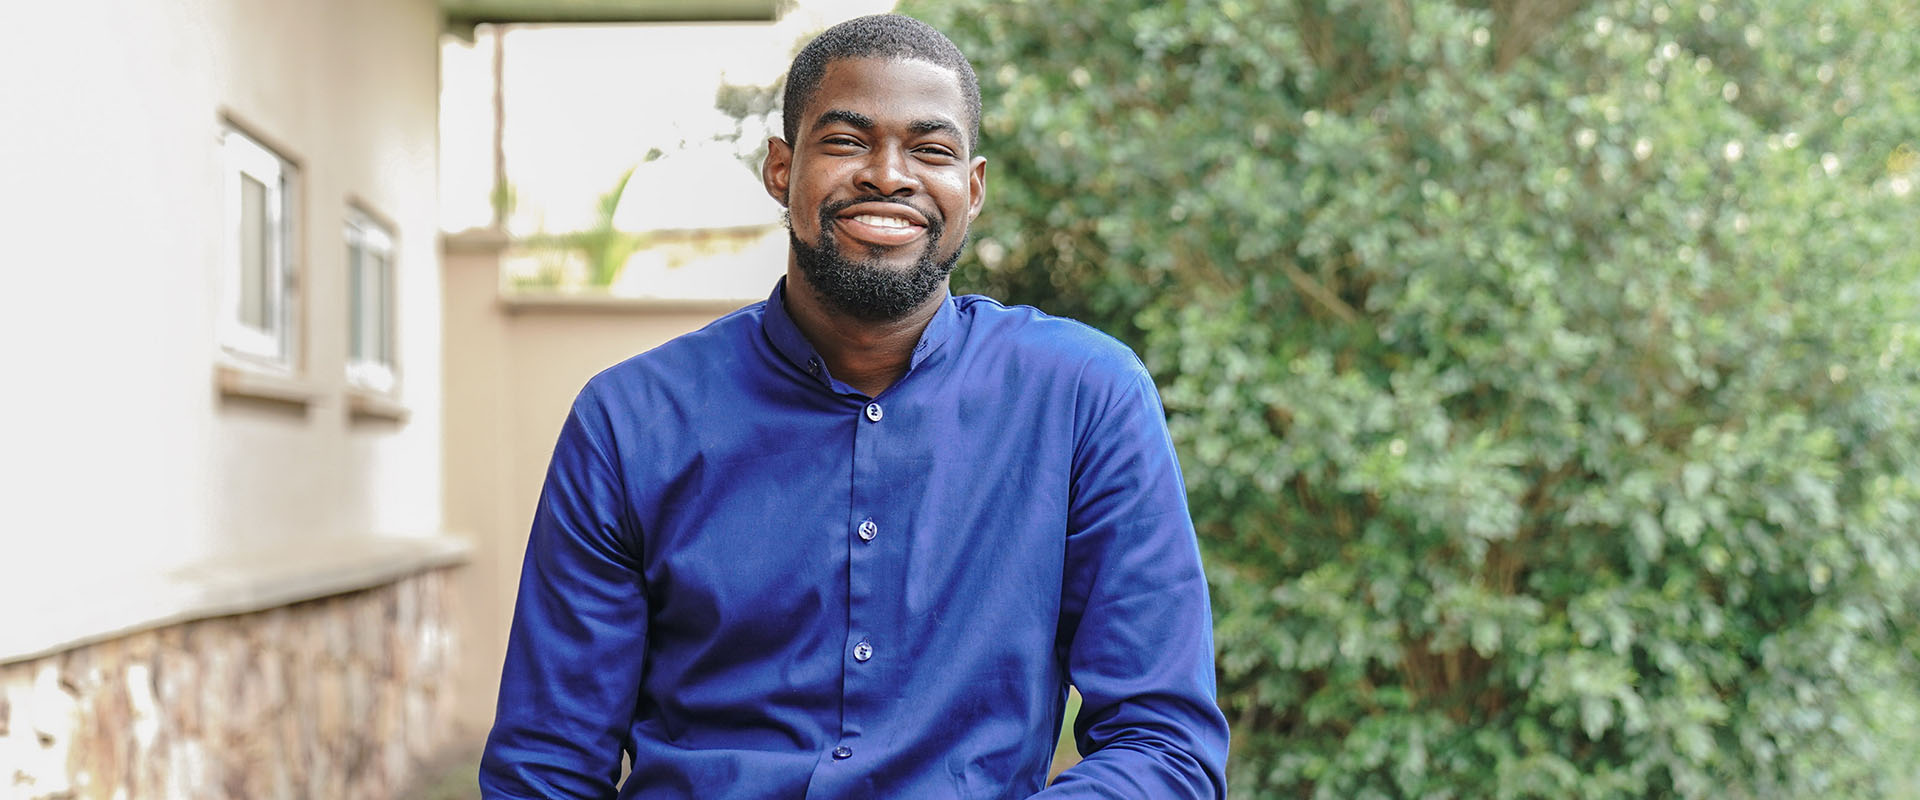 <p>Selected by classmates, Bryan Achiampong will deliver valedictorian speech</p>